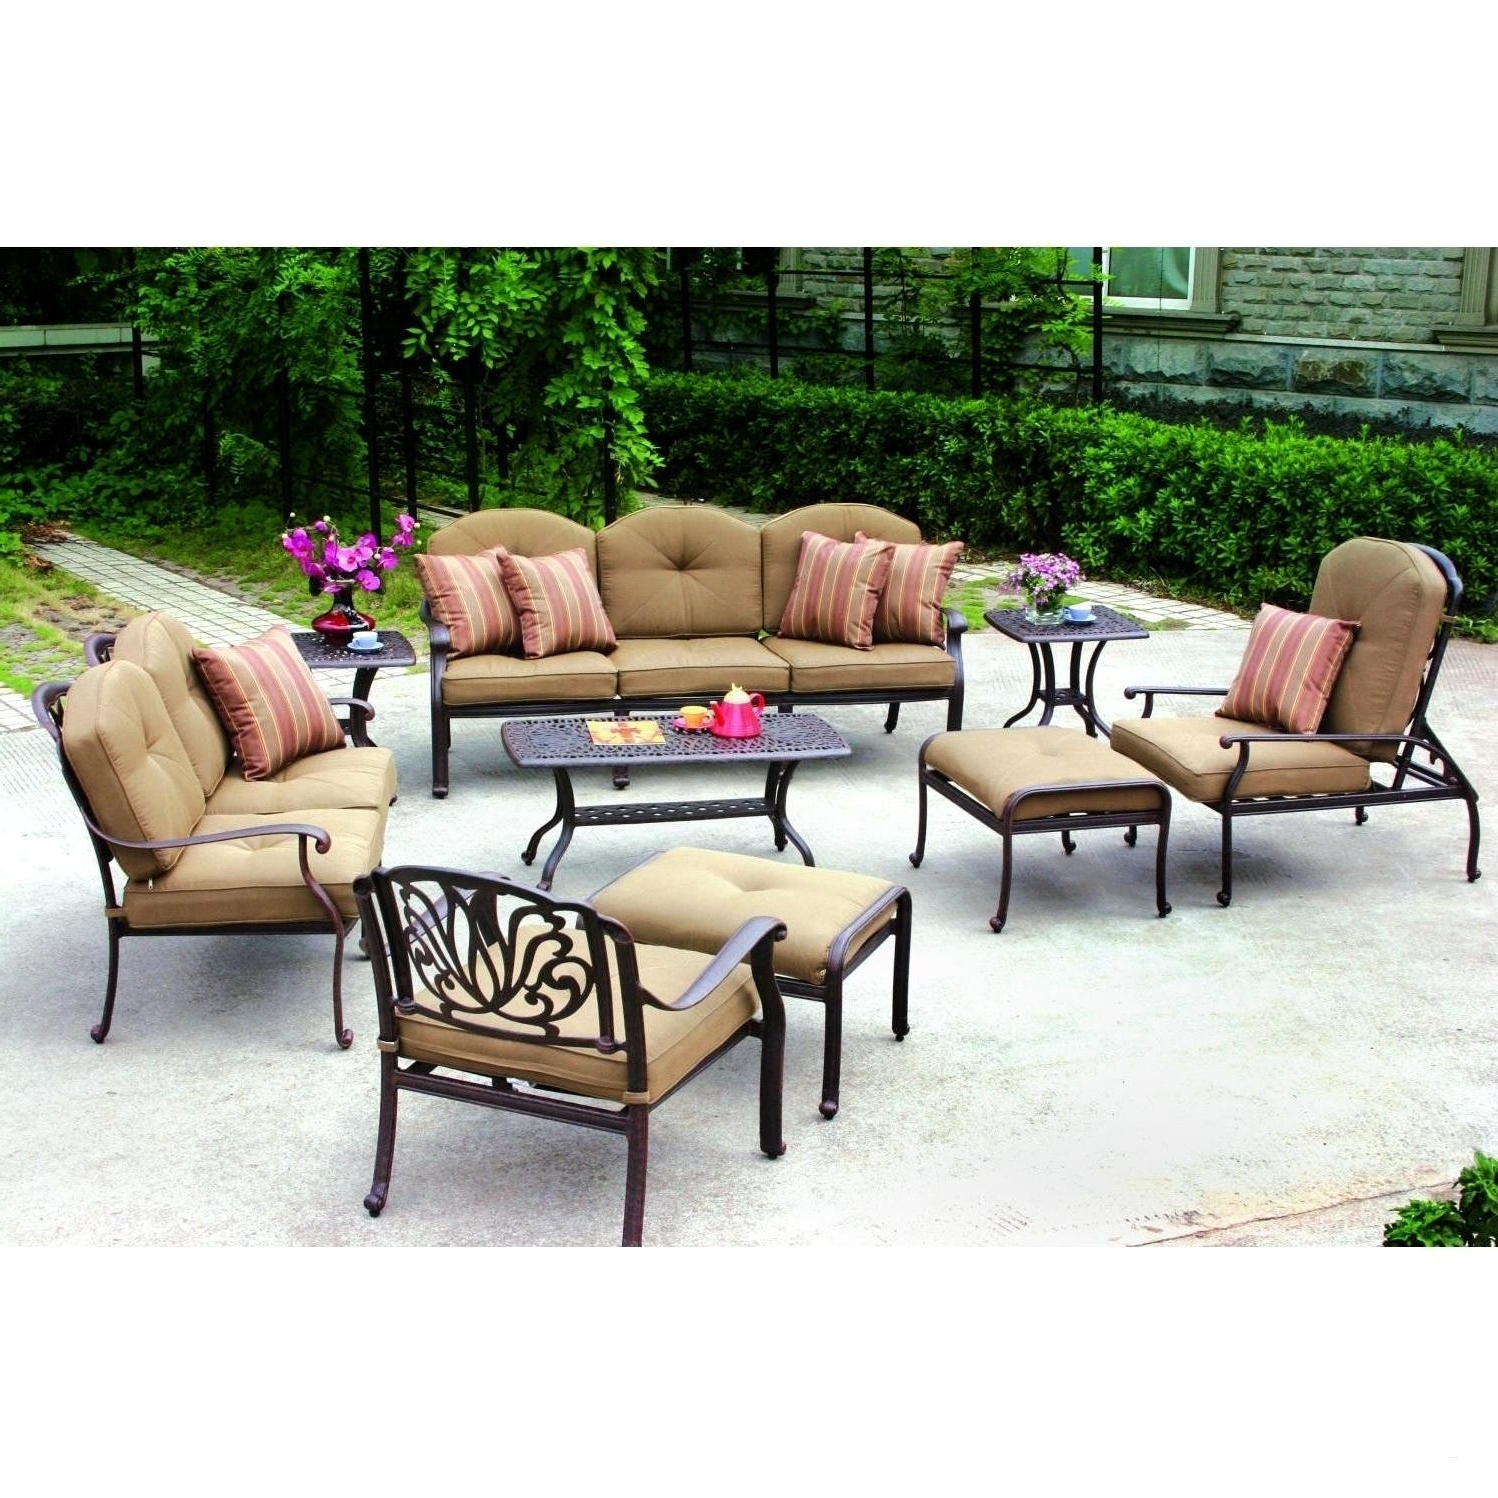 Outdoor Fire Pit Seating Conversation Chairs 3 Piece Patio Set In Trendy Target Patio Furniture Conversation Sets (View 4 of 20)